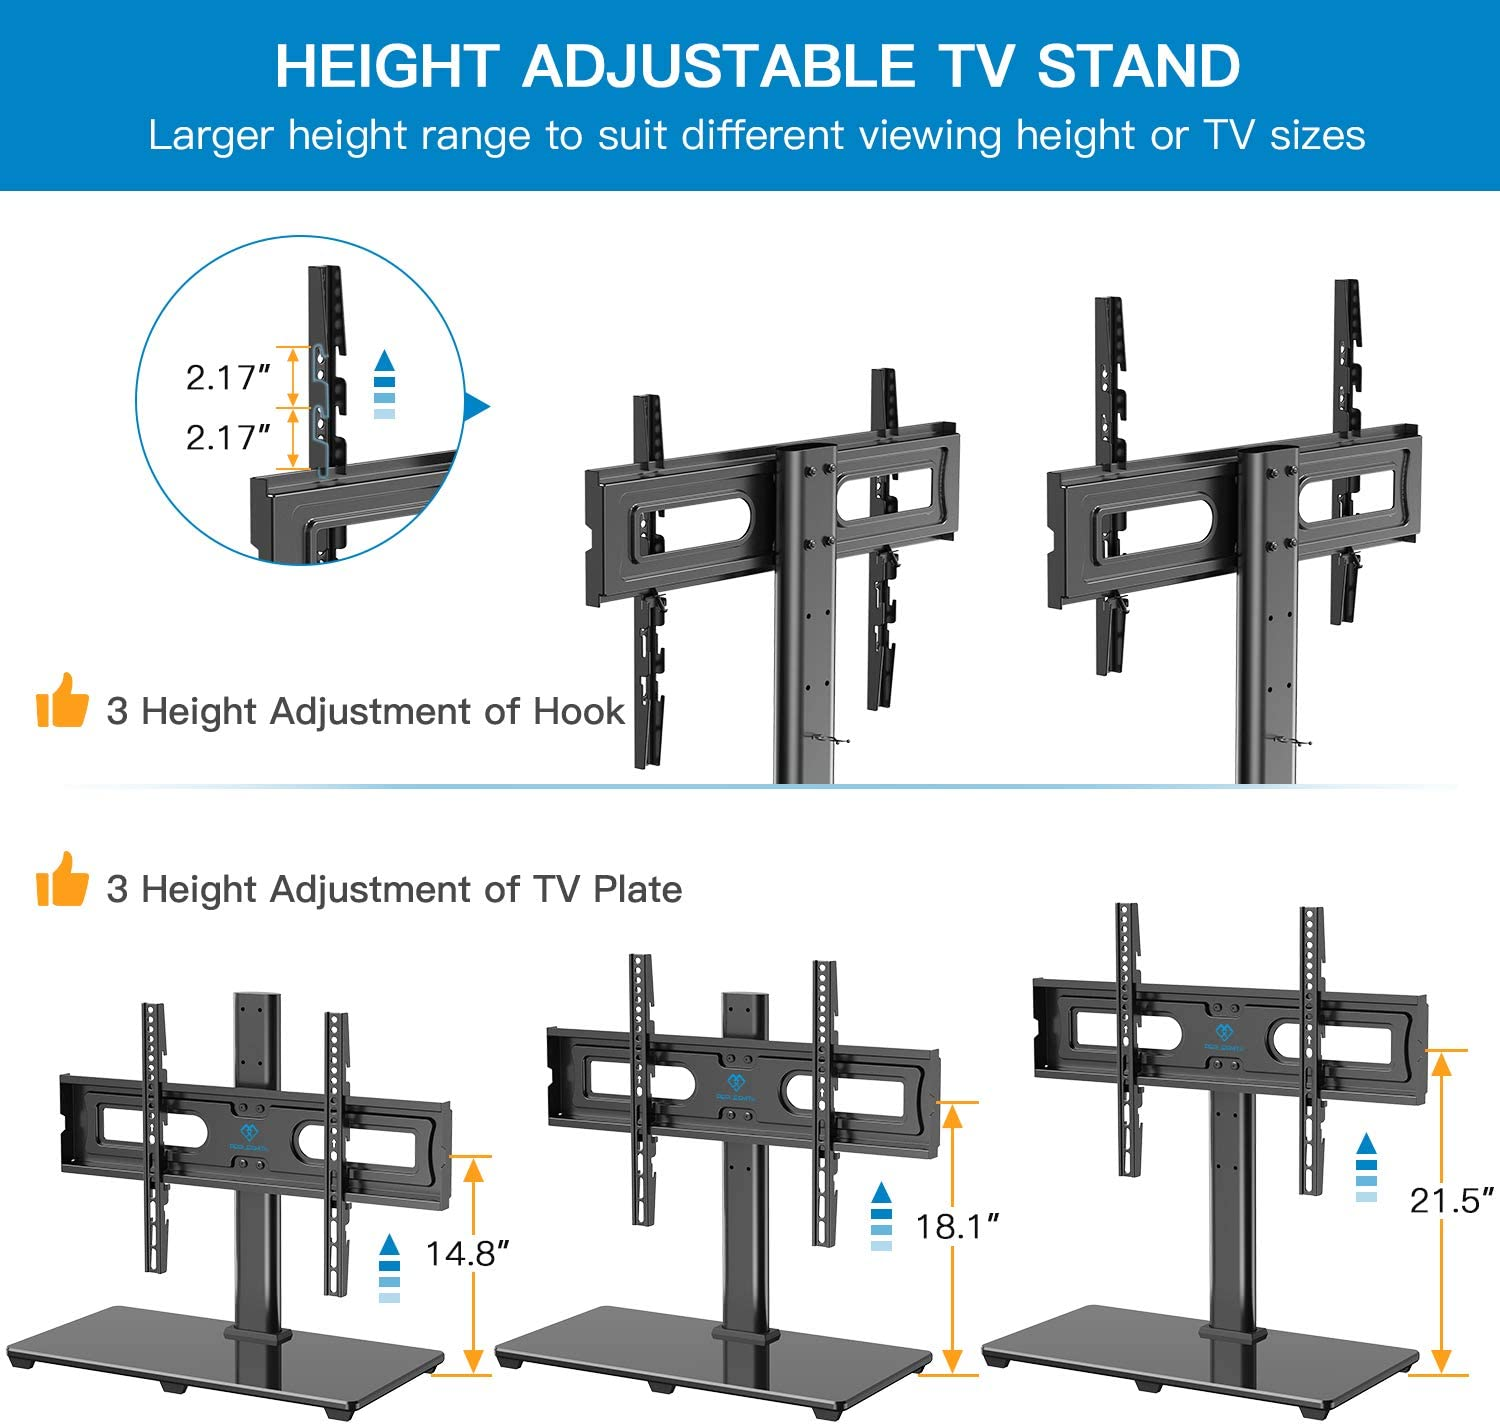 PERLESMITH Universal TV Stand Table Top TV Base for 37 to 70 inch LCD LED OLED 4K Flat Screen TVs - Height Adjustable TV Mount Stand with Tempered Glass Base, VESA 600x400mm, Holds up to 99lbs